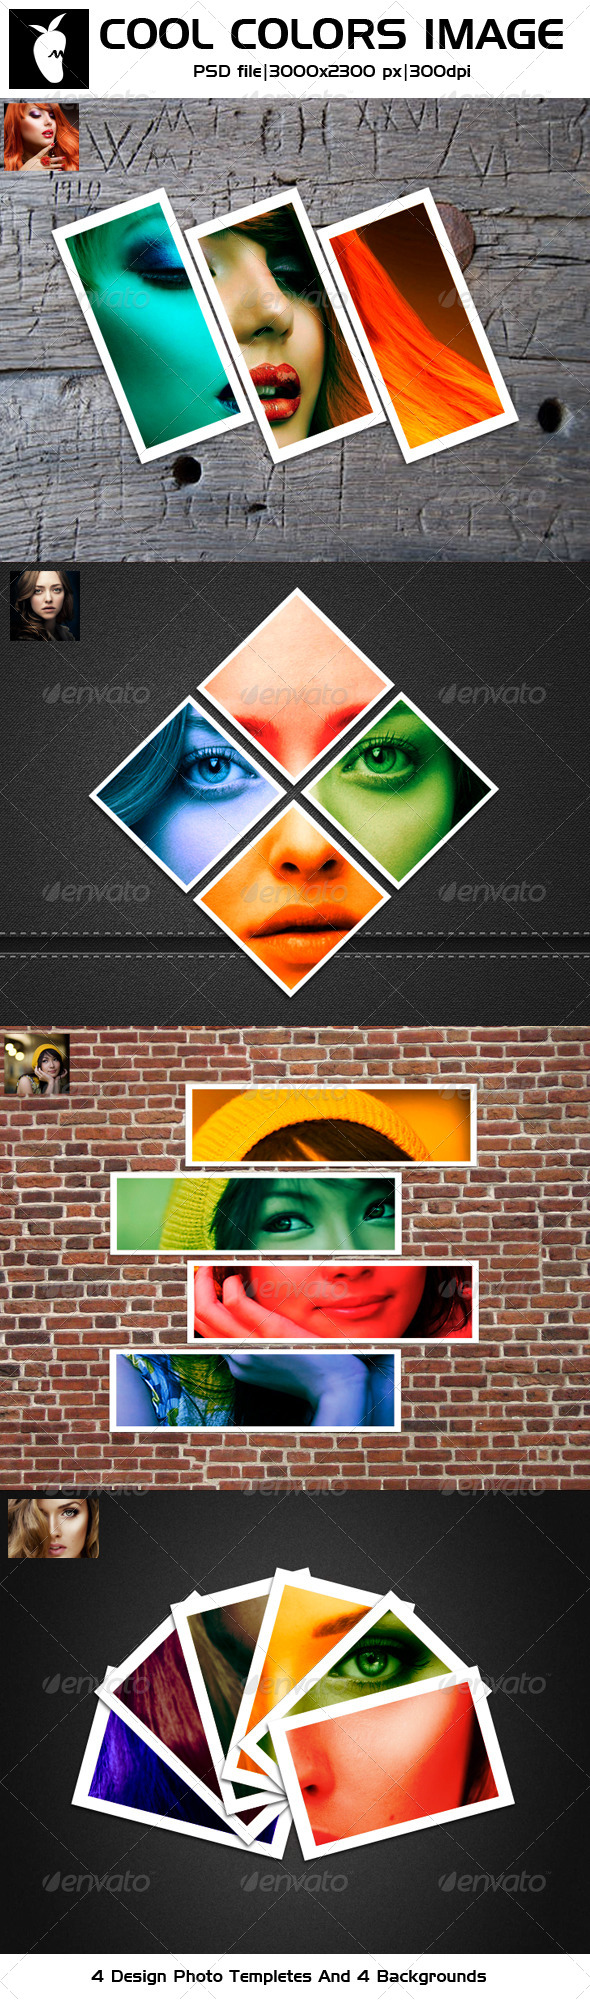 GraphicRiver Cool Colors Image Photo Templates 5547396